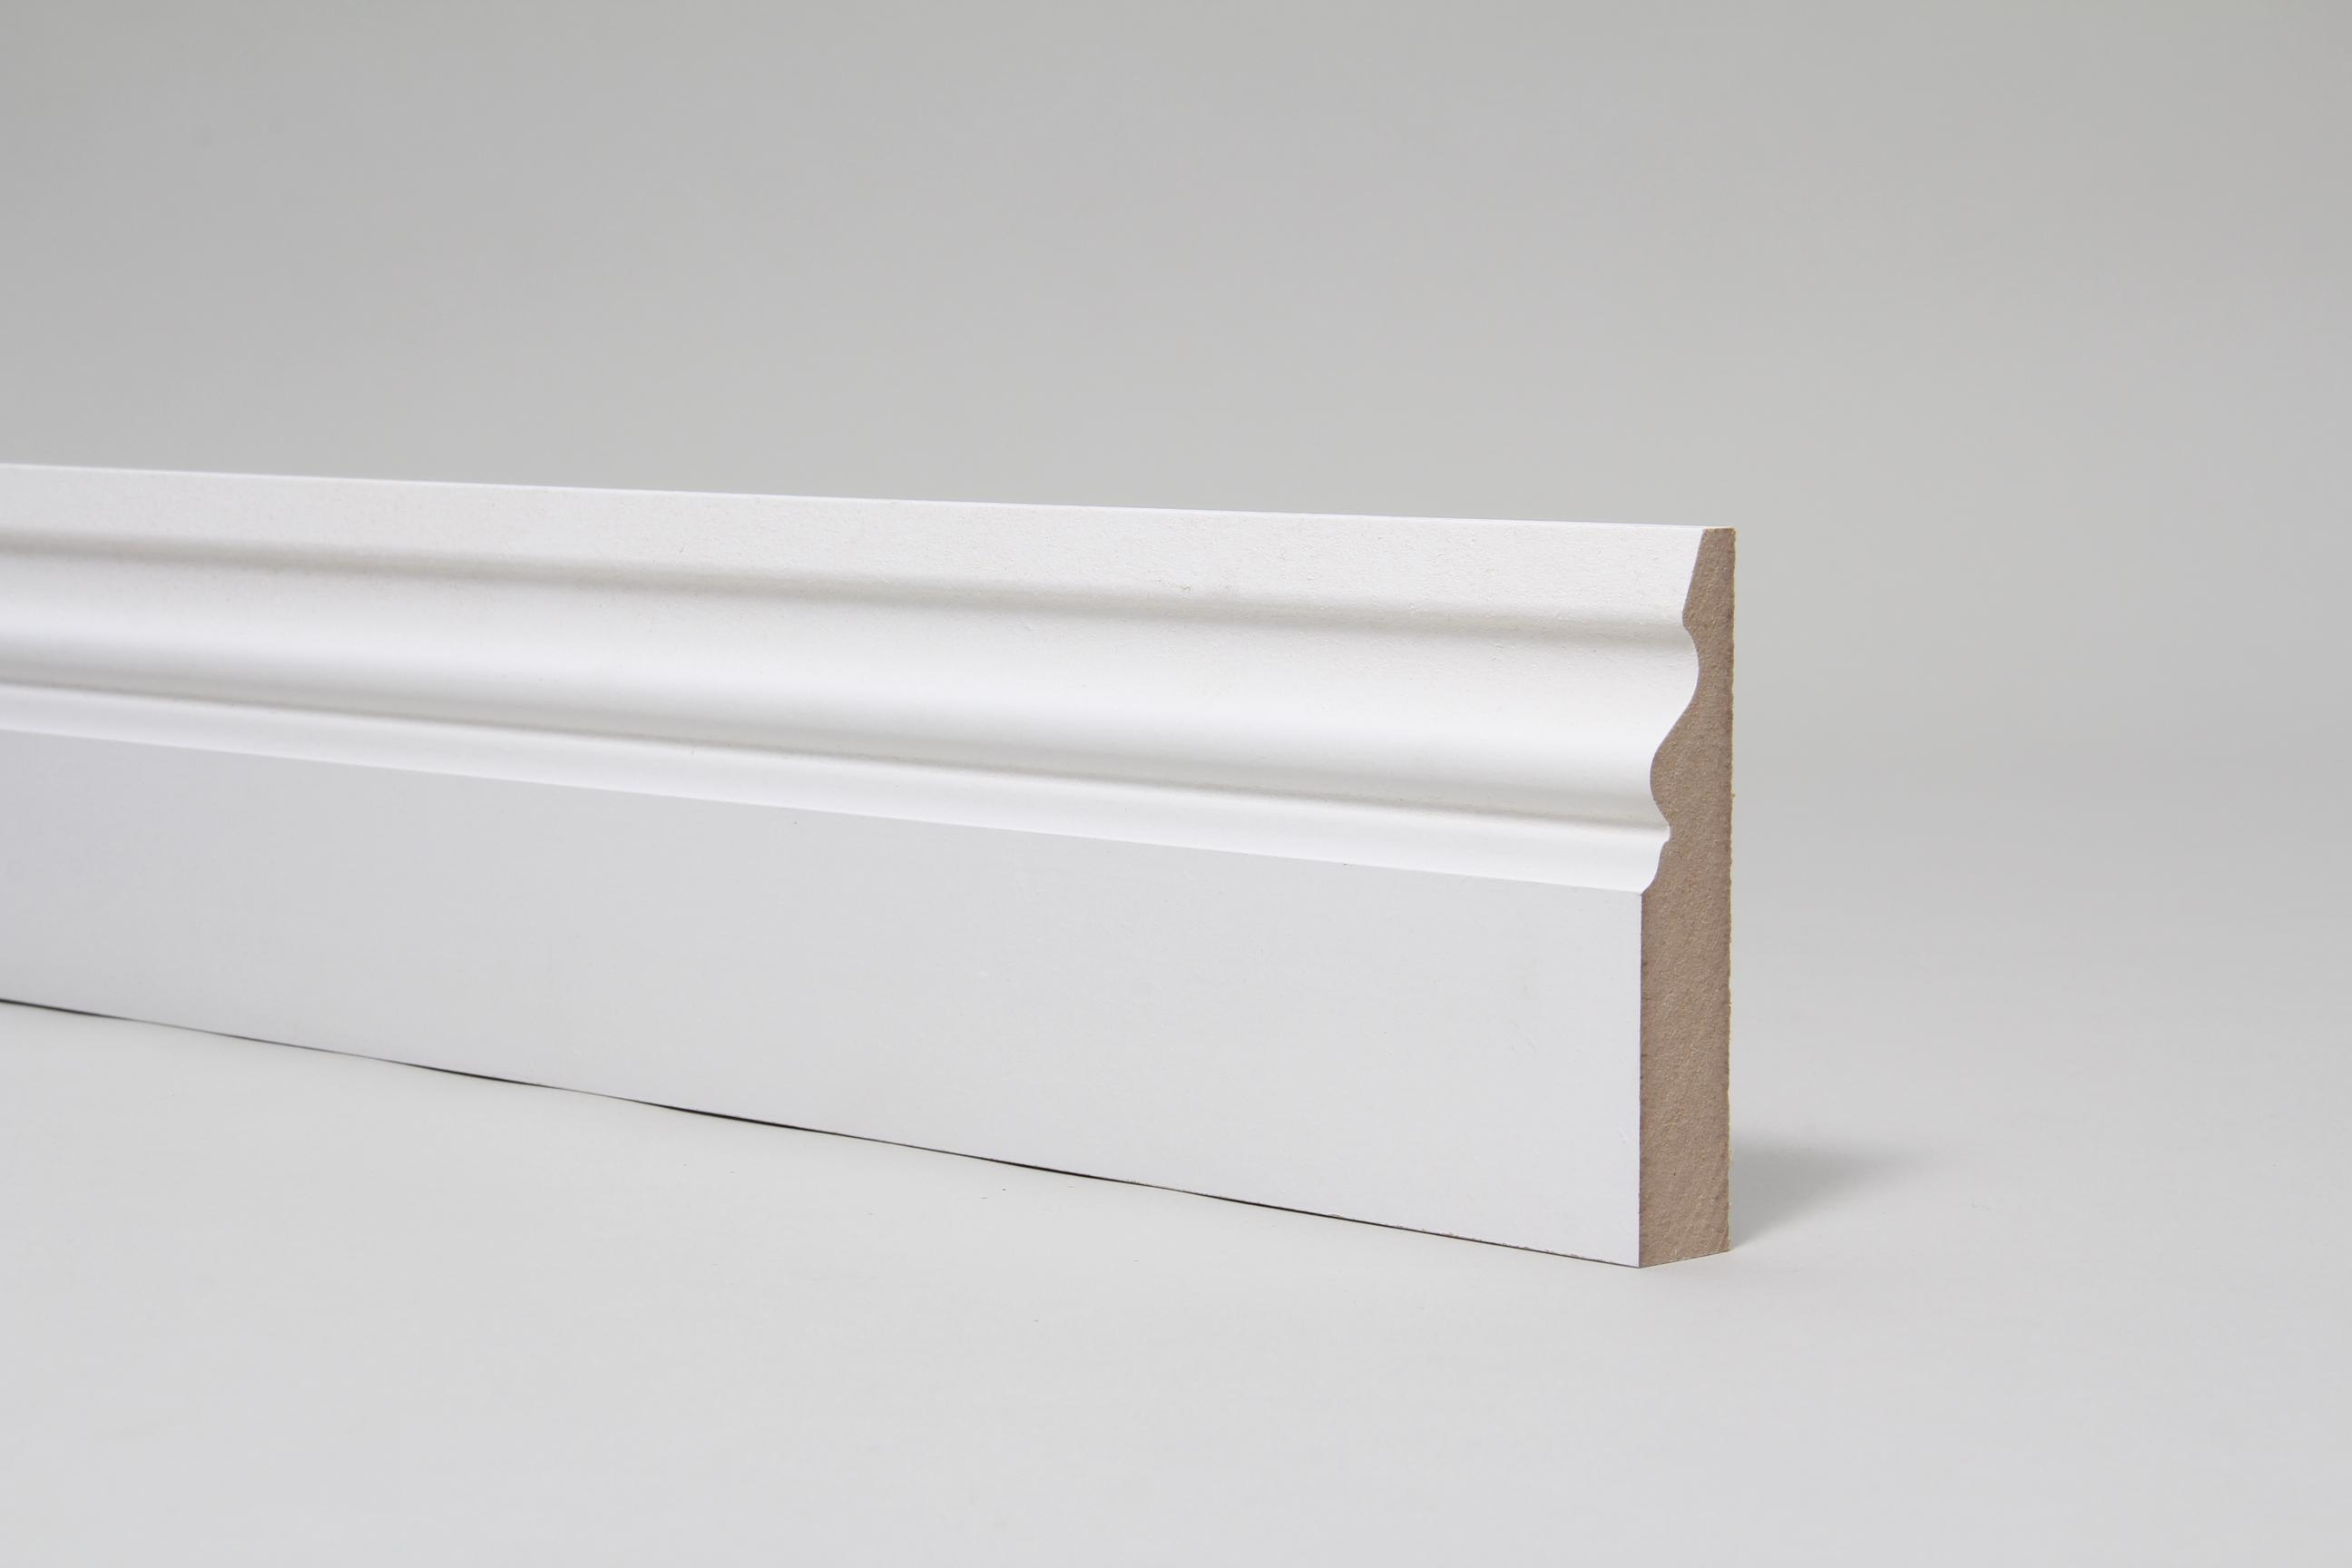 Ogee Pattern  4 18mm x 94mm x 4.4 Mtr Primed